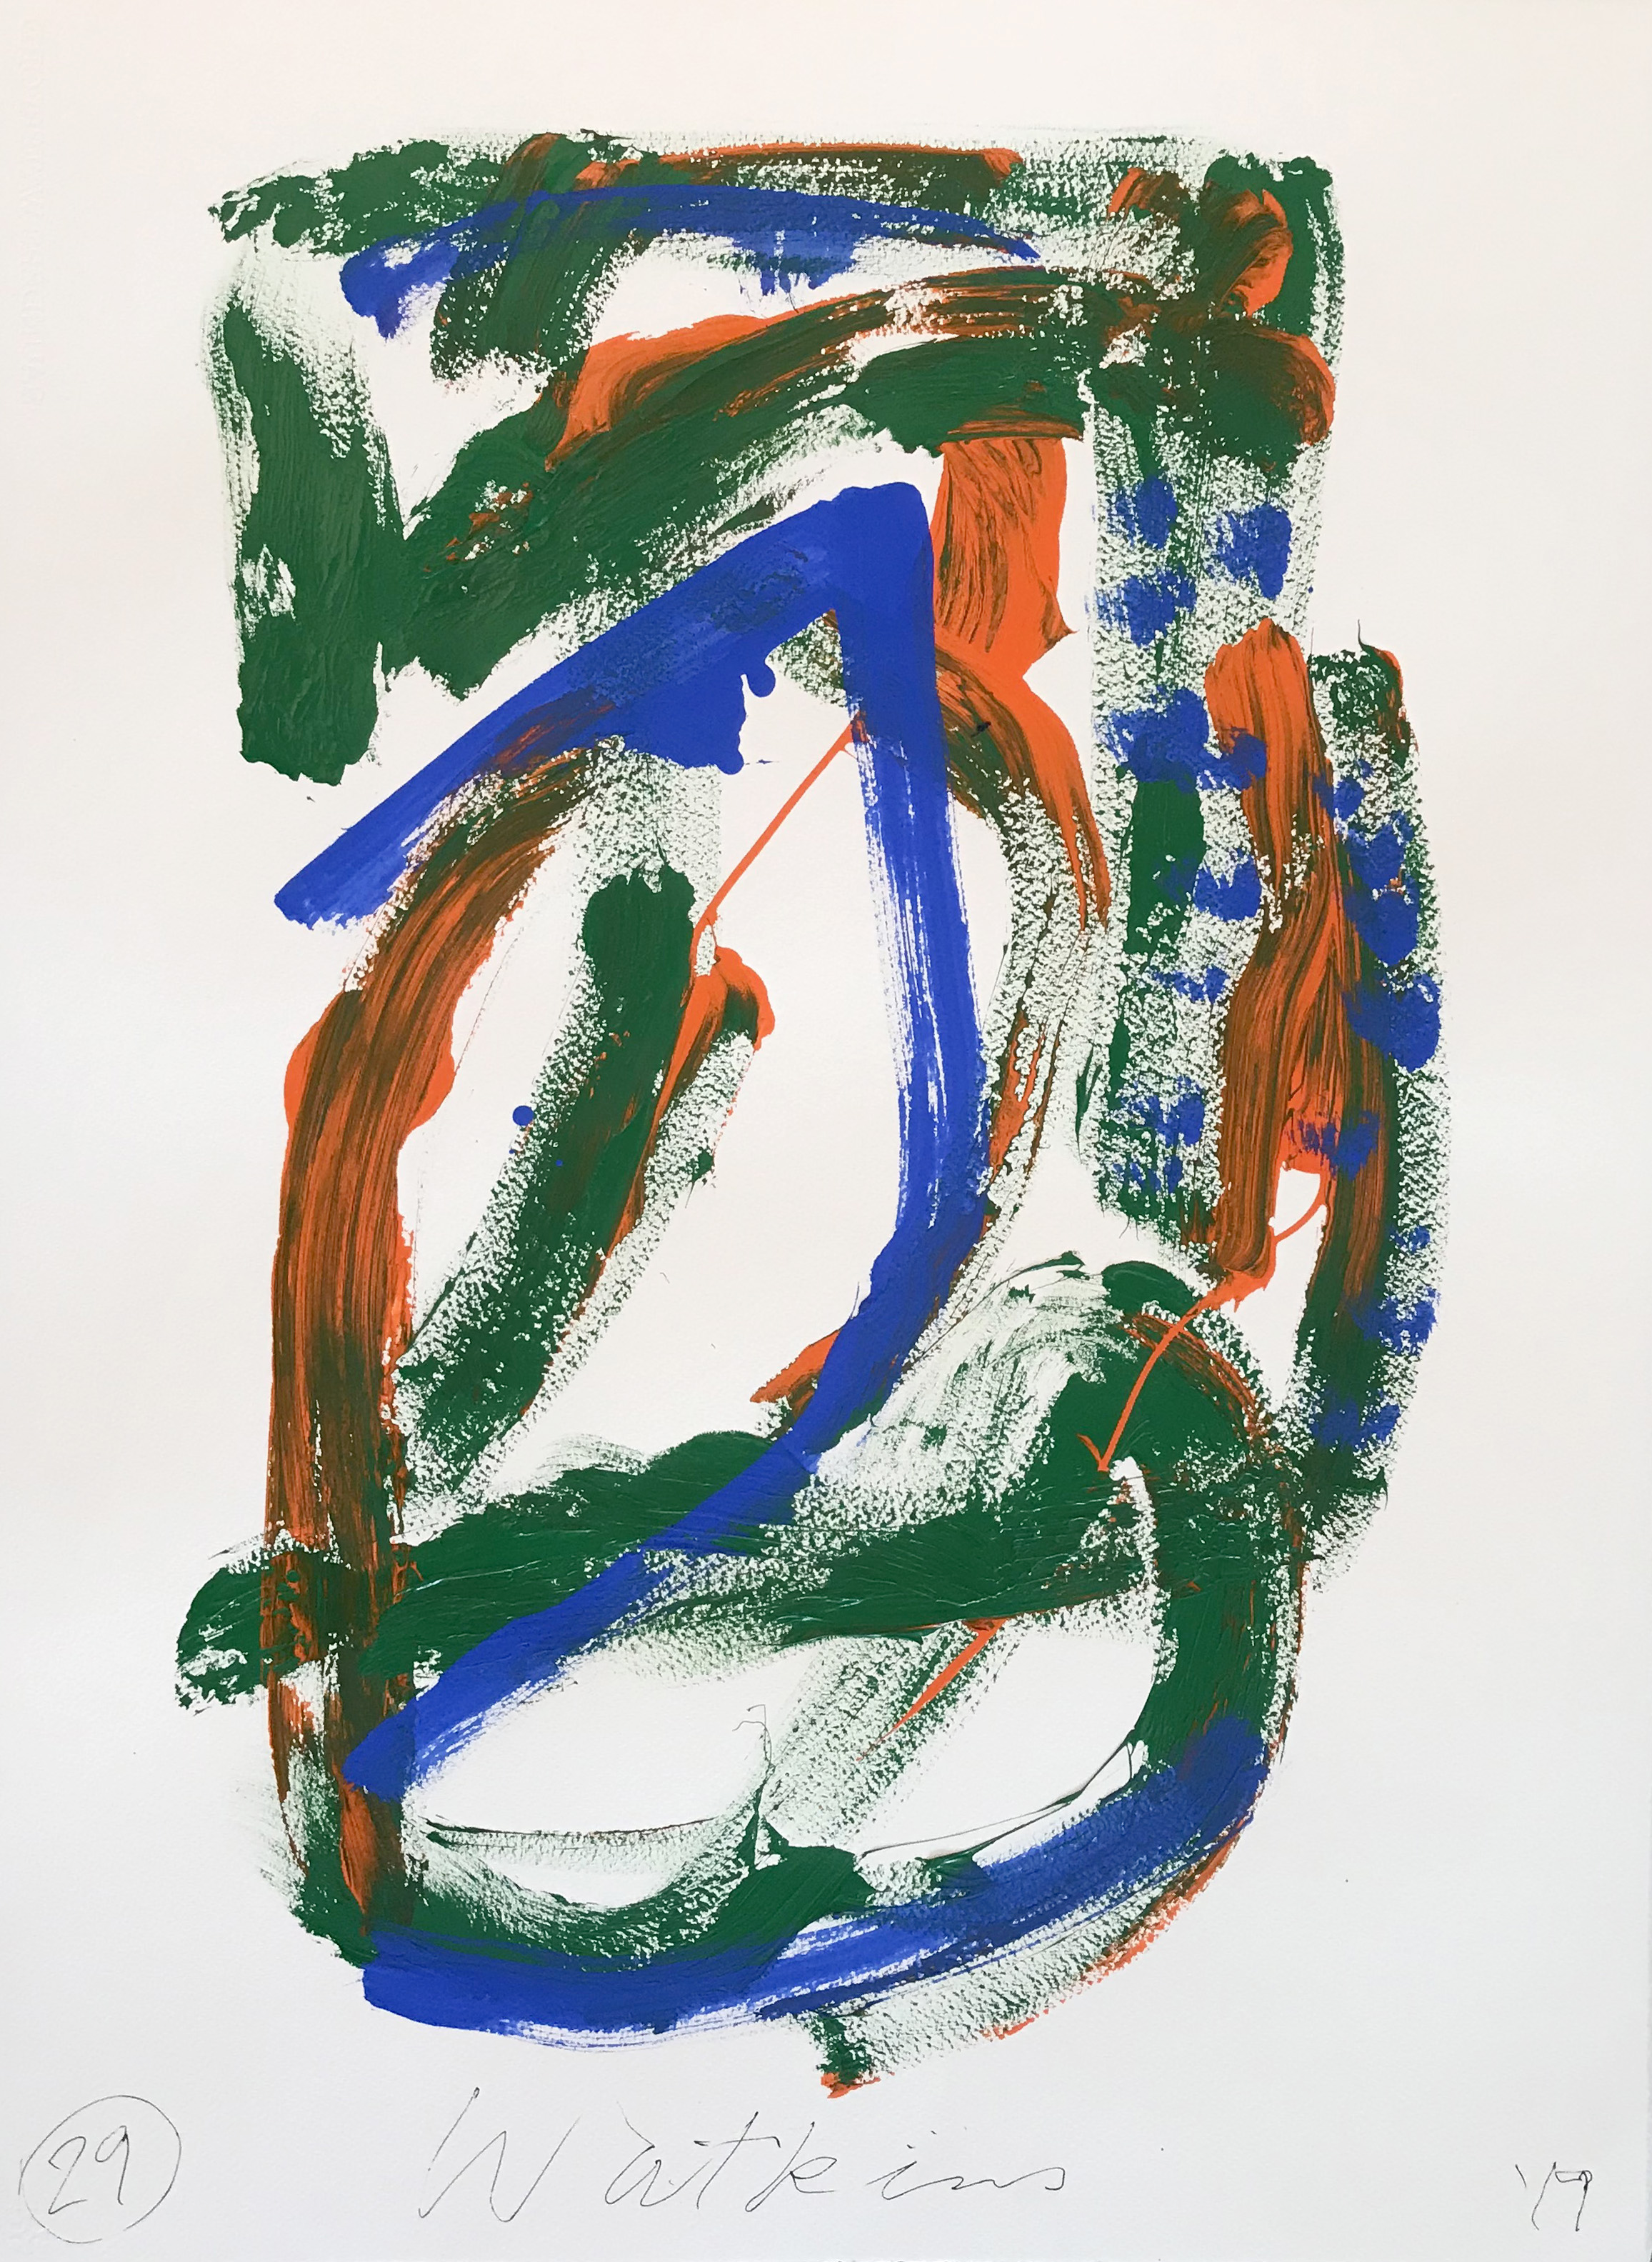 DICK WATKINS  Untitled drawing 29 , 2018 acrylic and pastel on 300gsm paper 76 x 56 cm